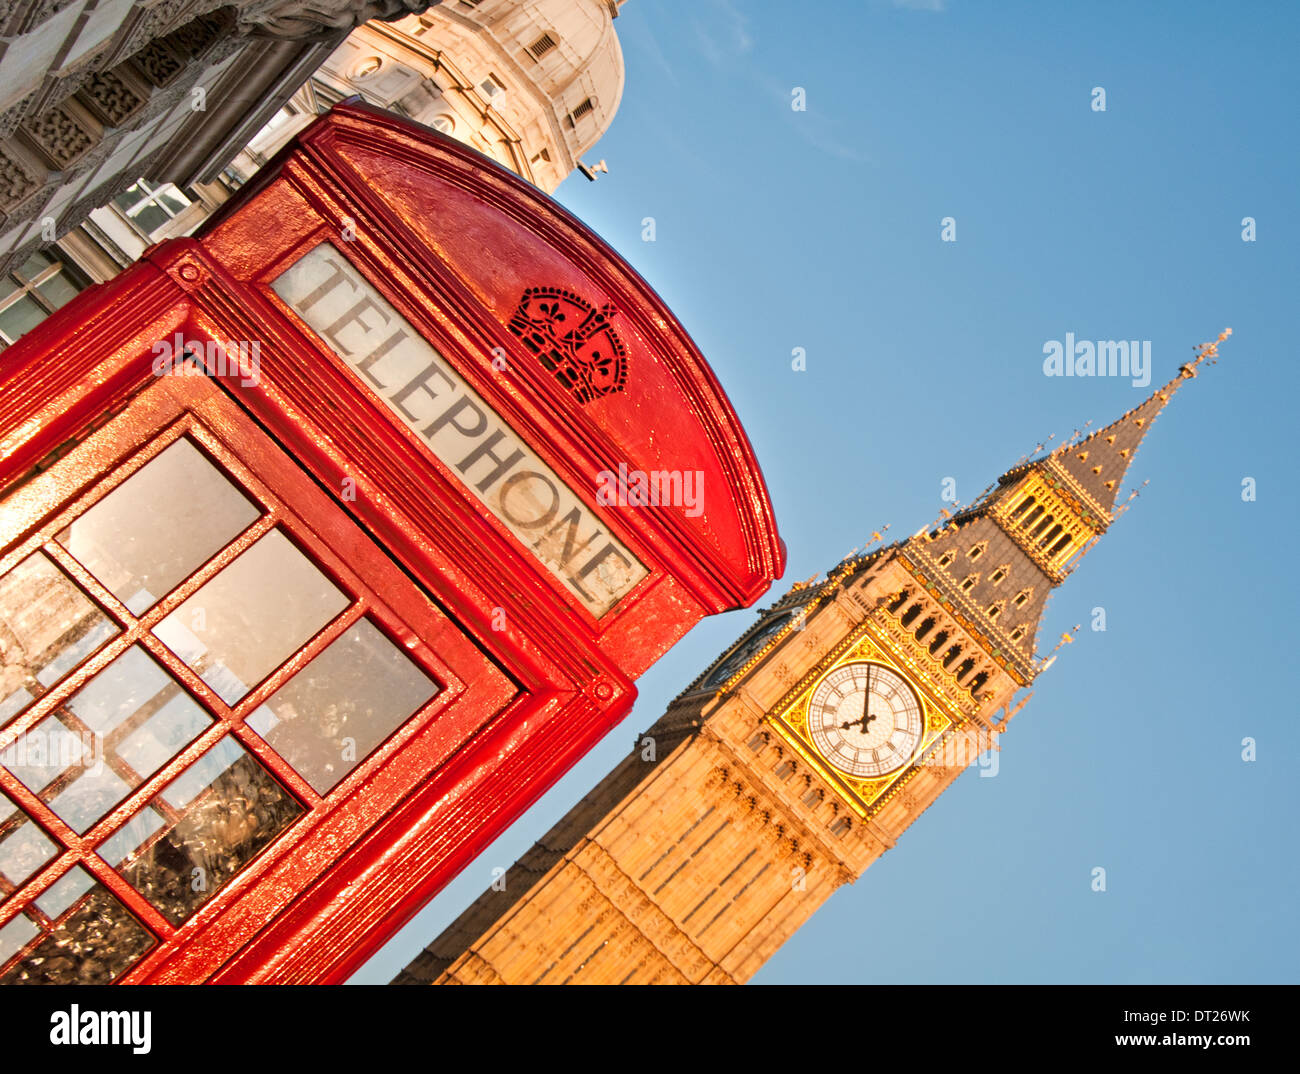 British Bright Red Telephone Box and Big Ben, London, England, UK - Stock Image